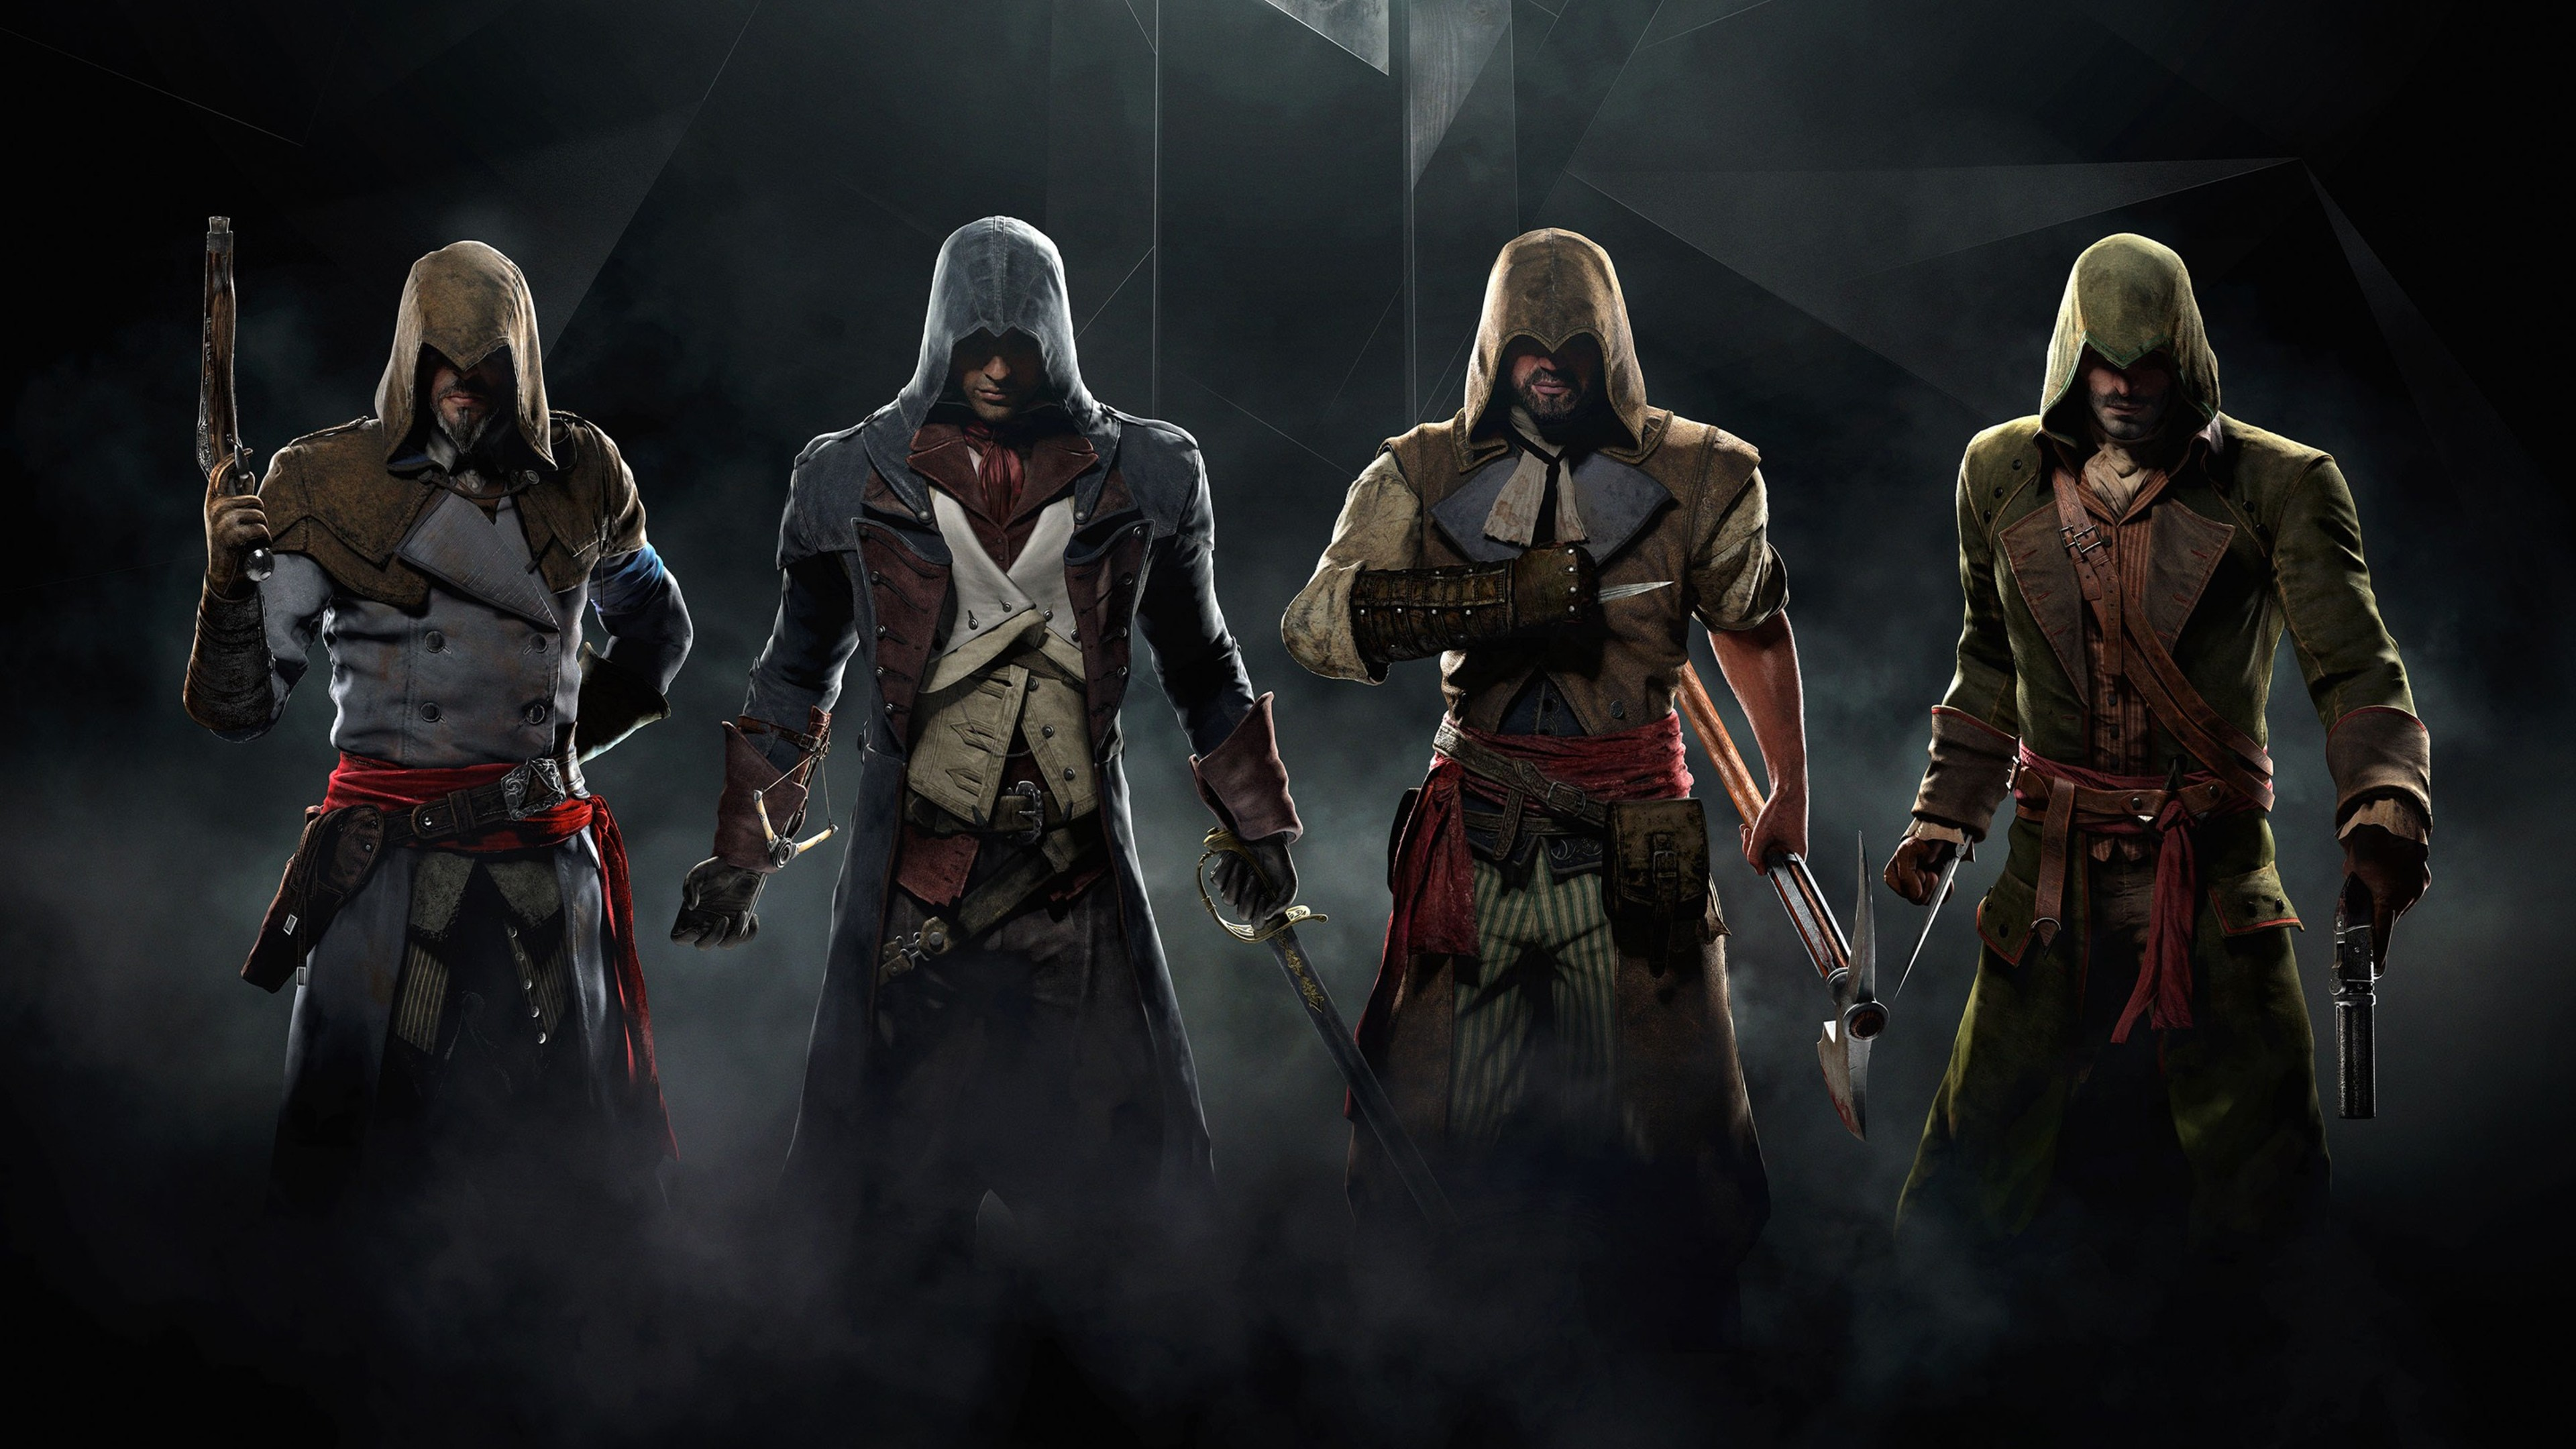 assassins creed unity game desktop, hd games, 4k wallpapers, images